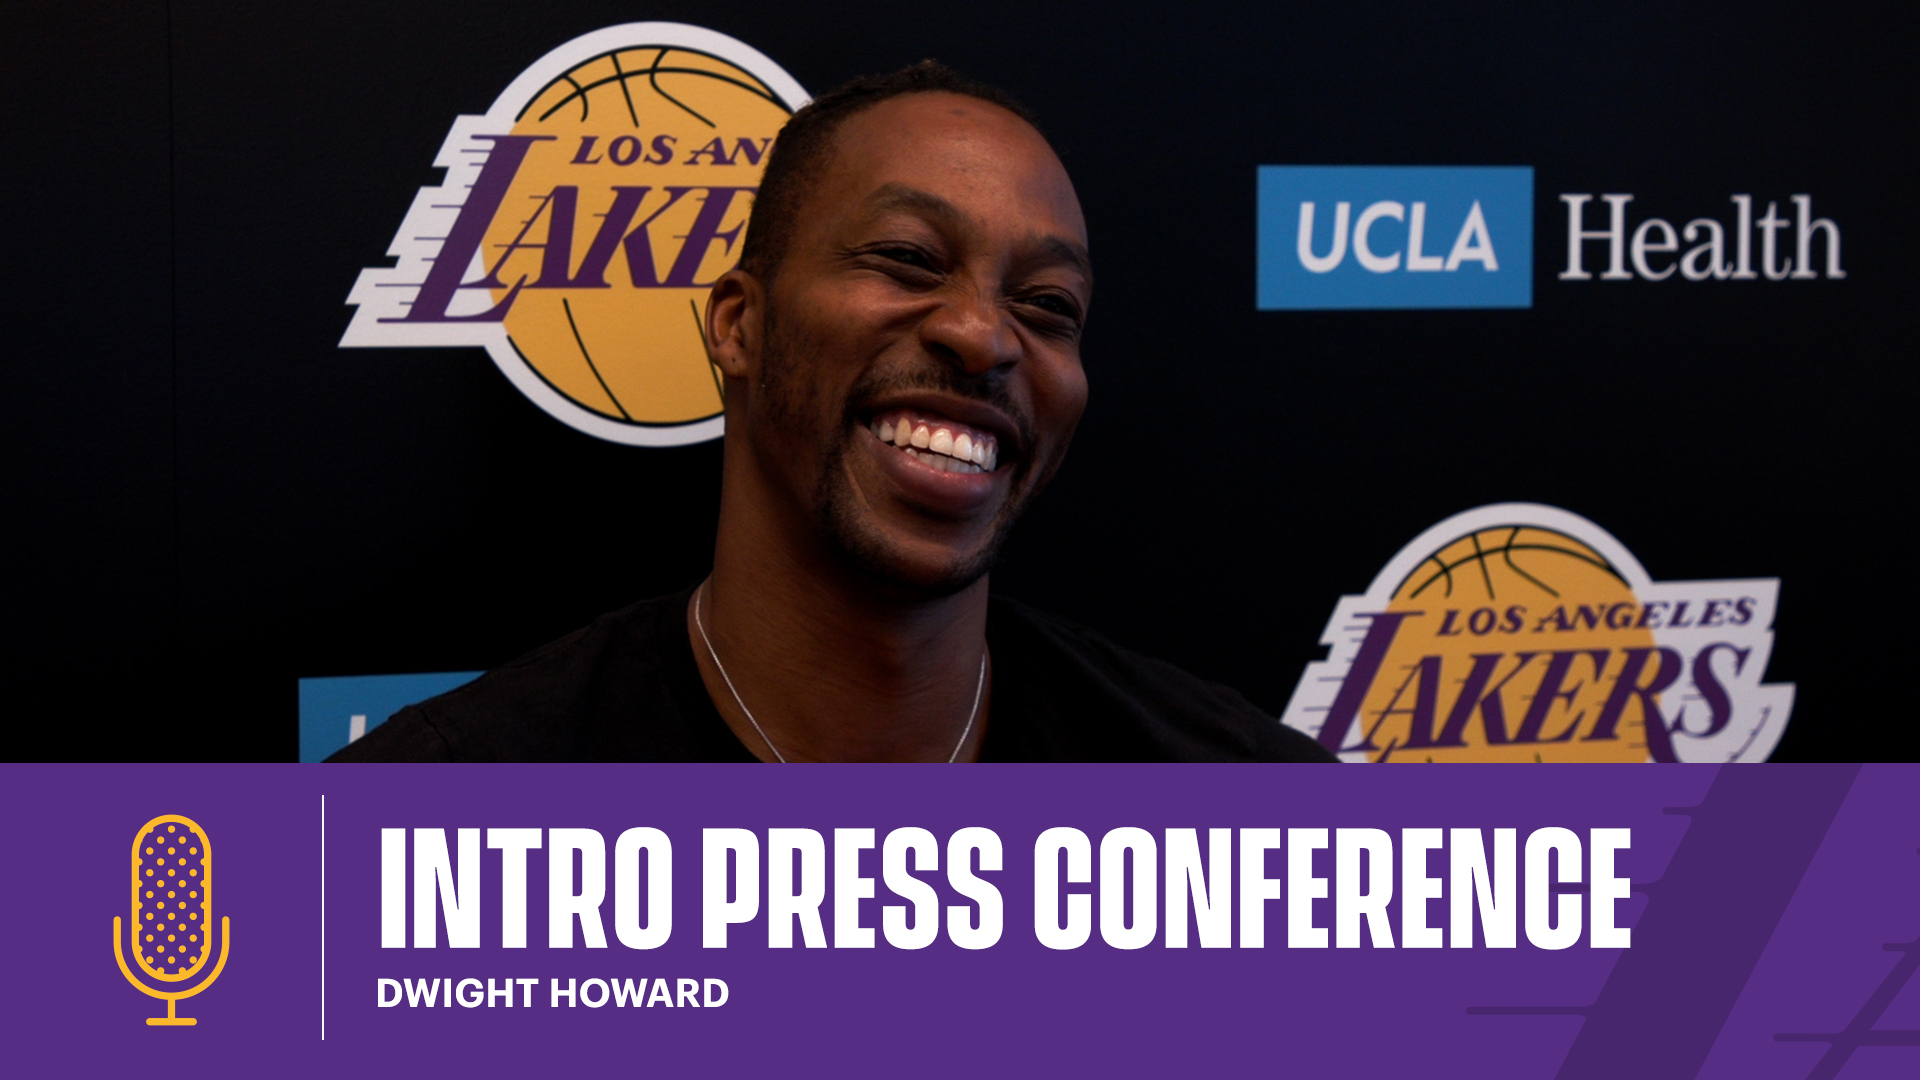 Intro Press Conference: Dwight Howard (8/6/21)